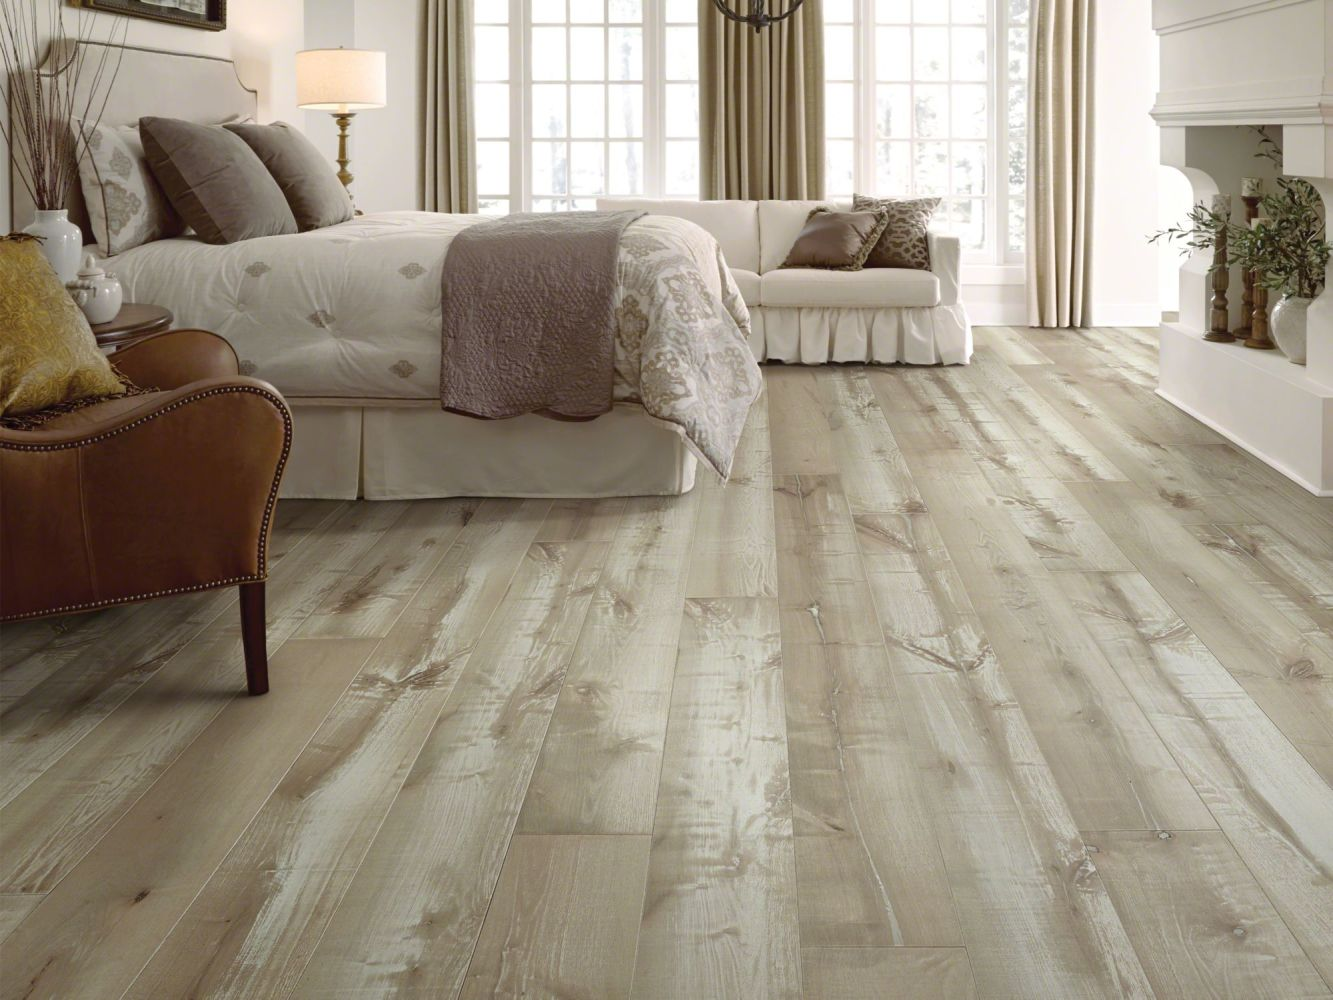 Shaw Floors Duras Hardwood Impressions Maple Sanctuary 05046_HW660